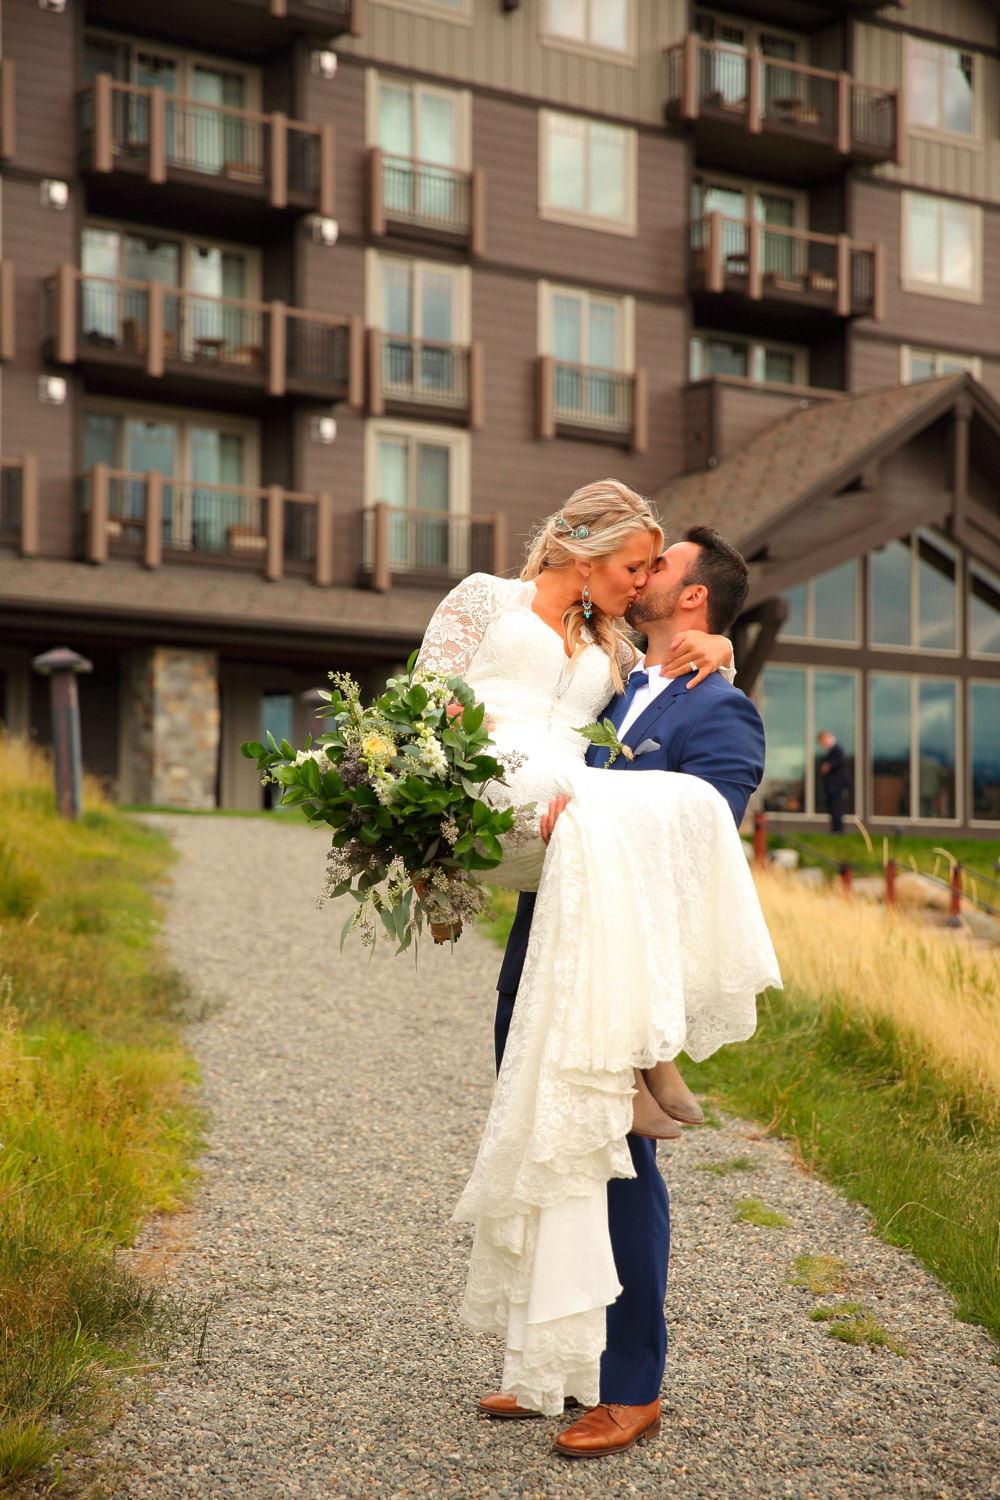 Wedding+Suncadia+Resort+Elum+Washington+14.jpg